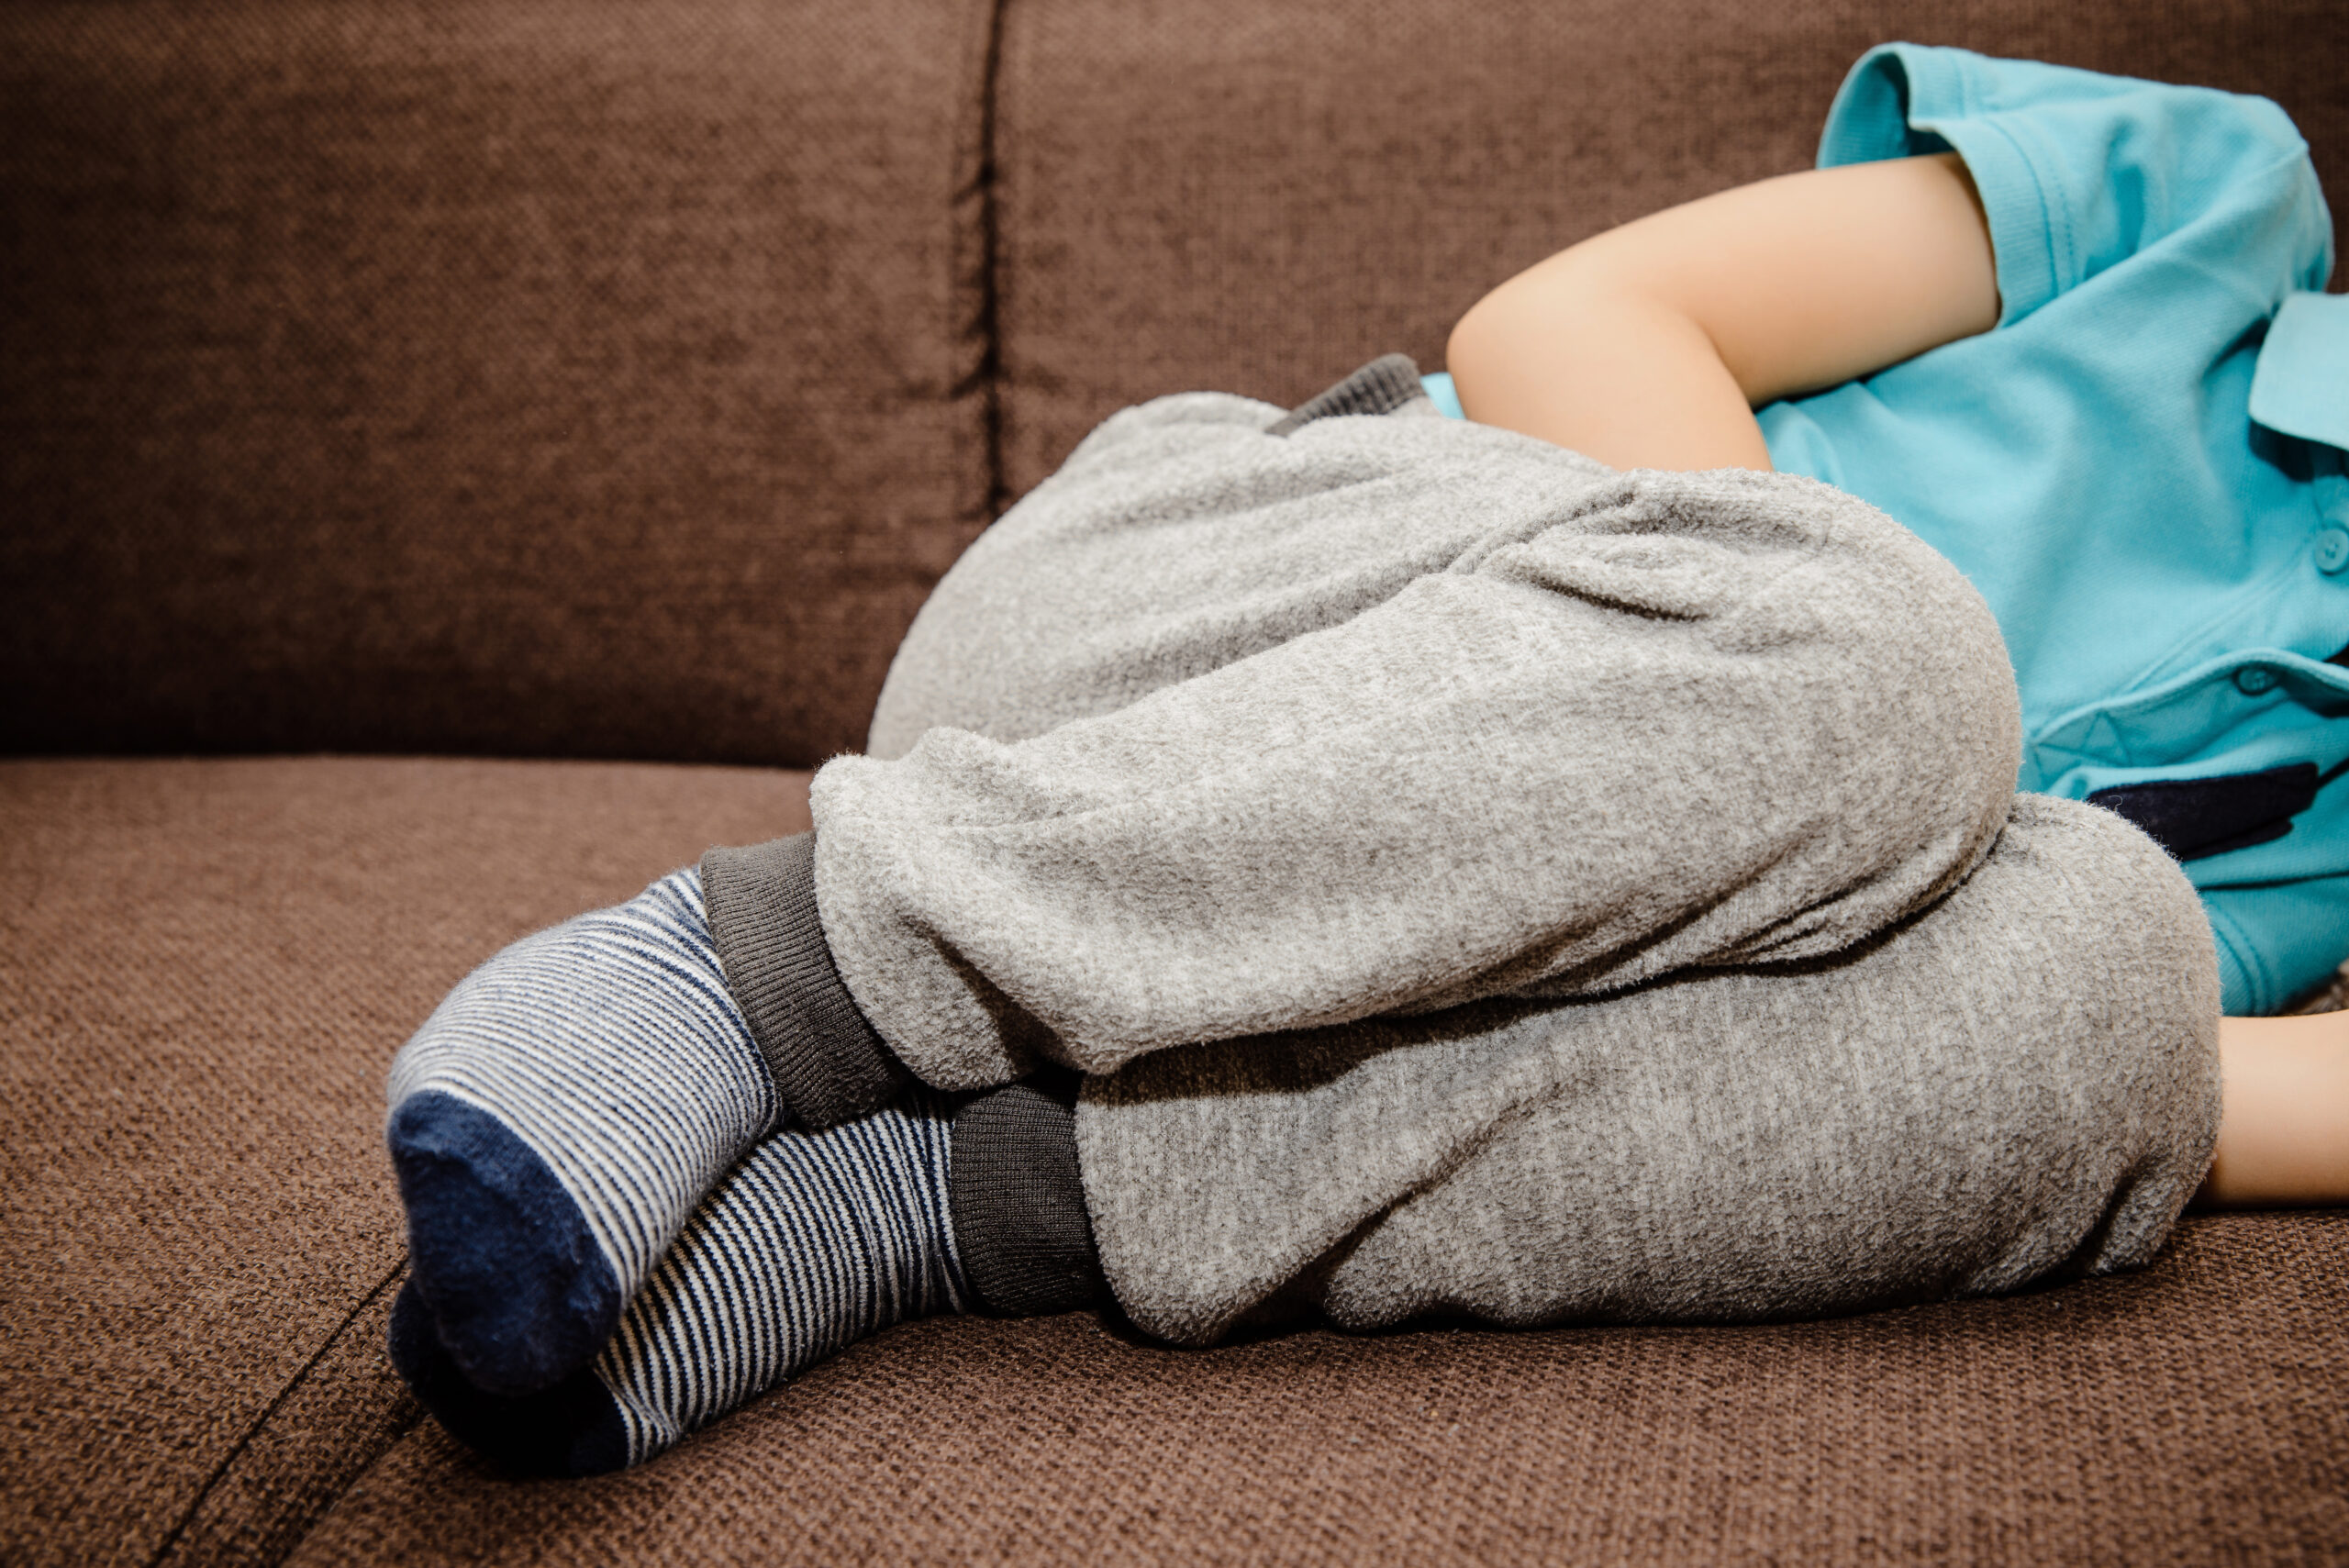 child has stomach ache from anxiety